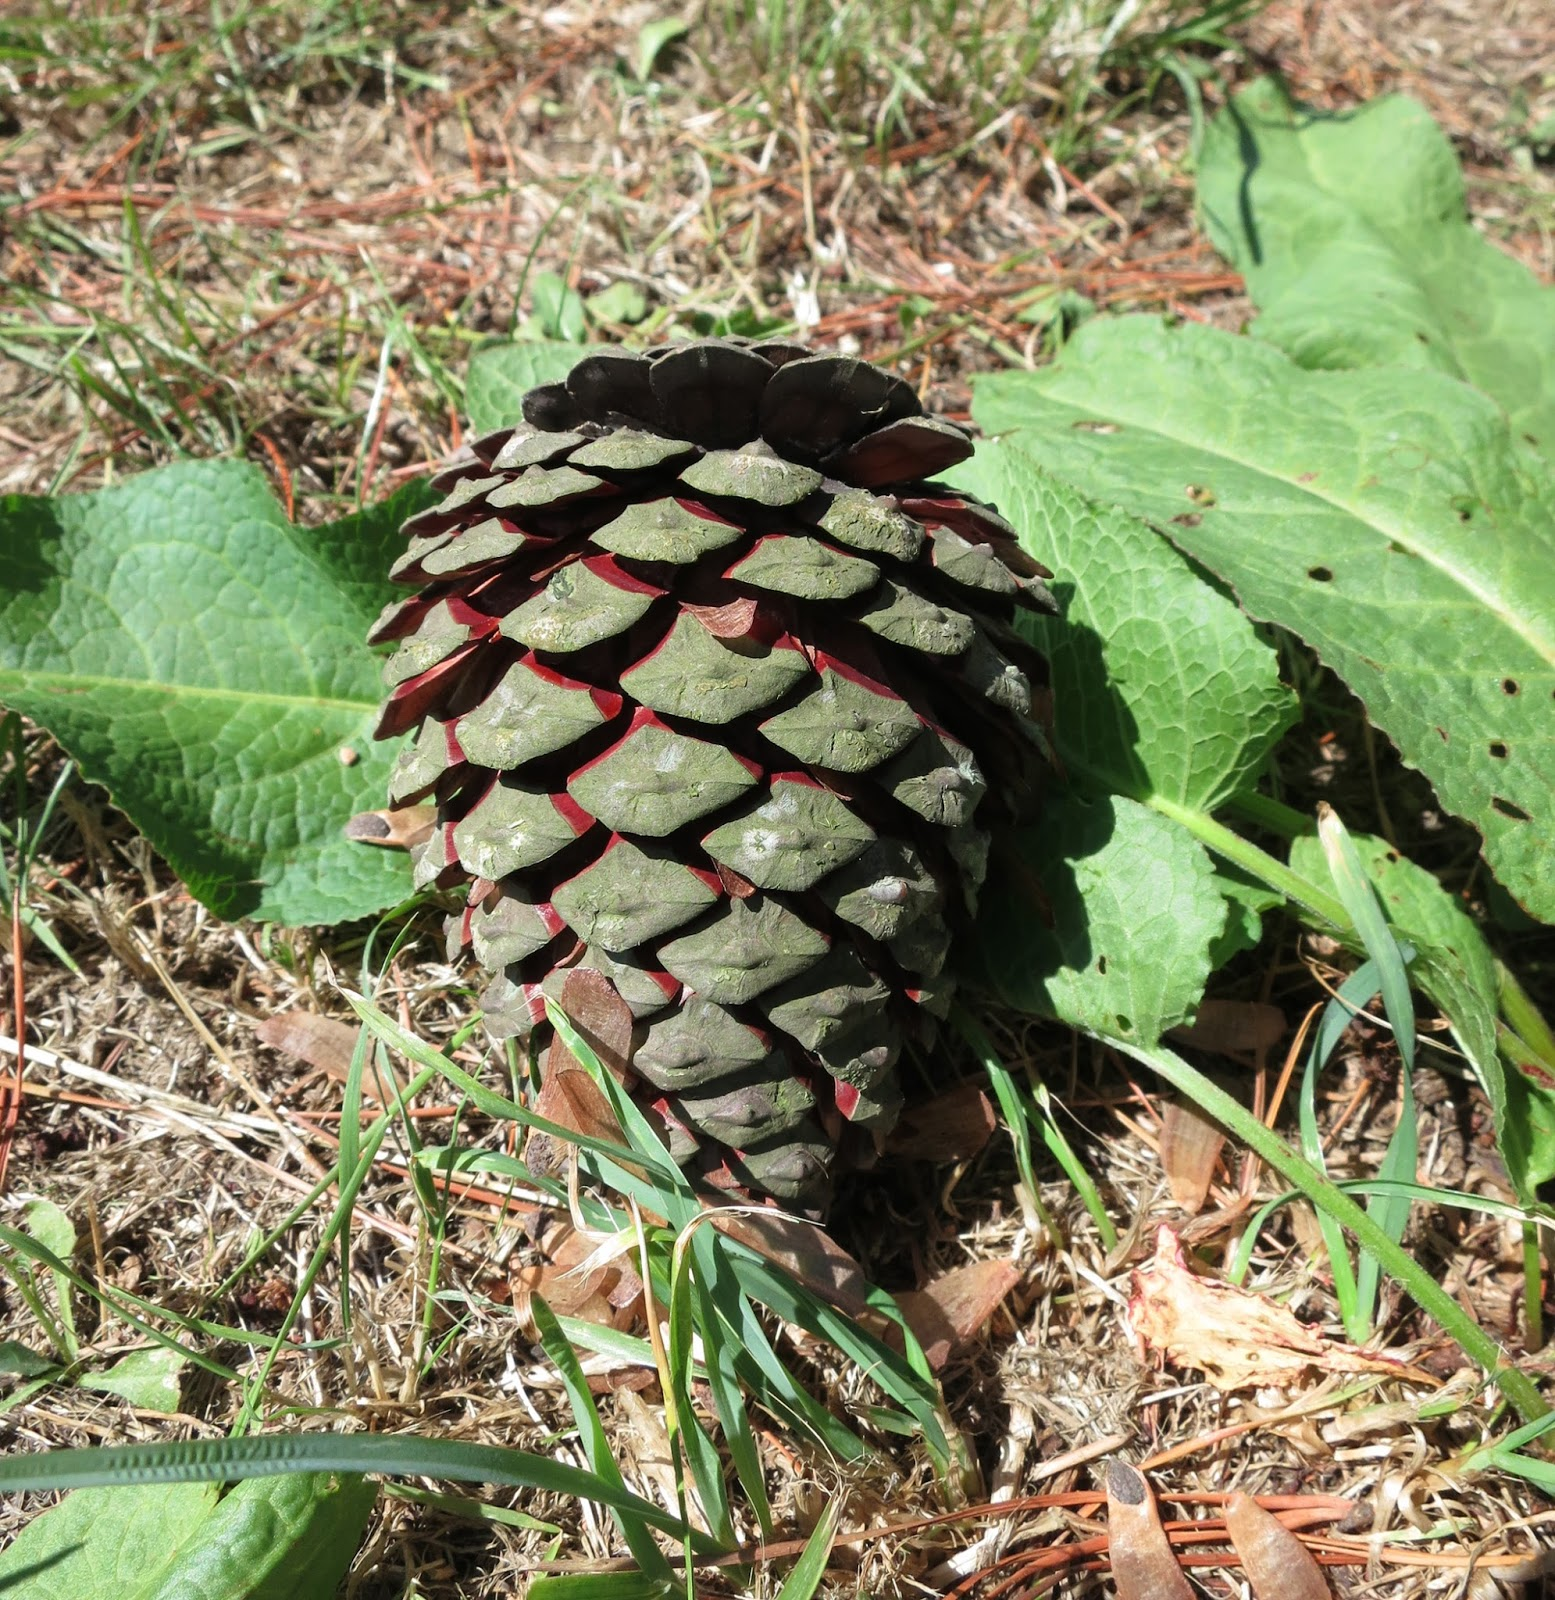 Pine cone with open scales lying among dock leaves.